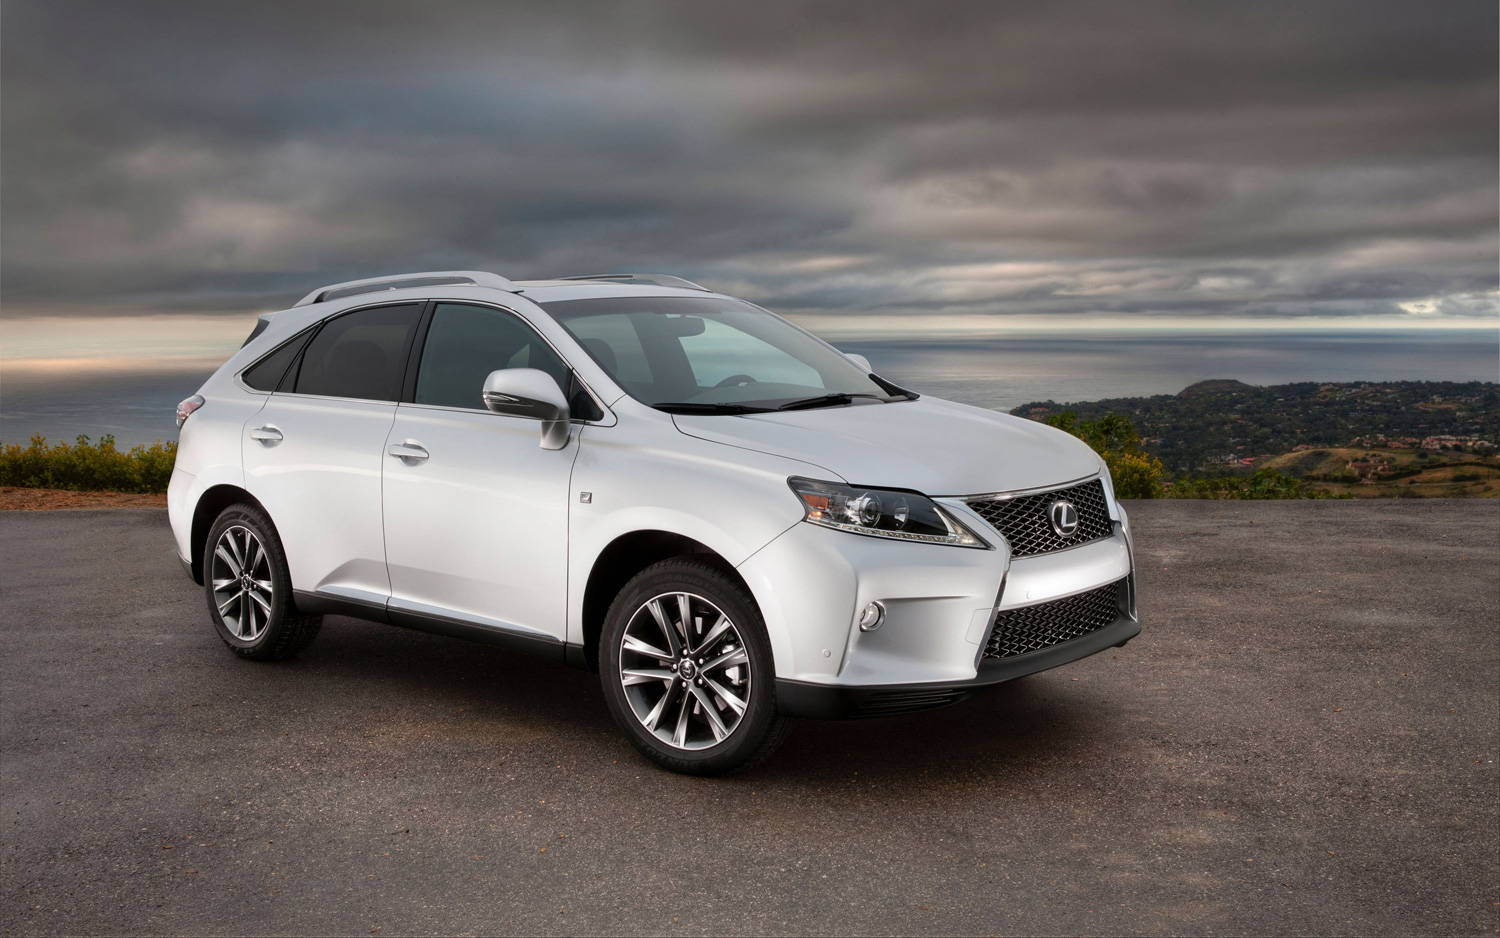 wallpapers scoop 2013 lexus rx 350 f sport hd wallpapers. Black Bedroom Furniture Sets. Home Design Ideas